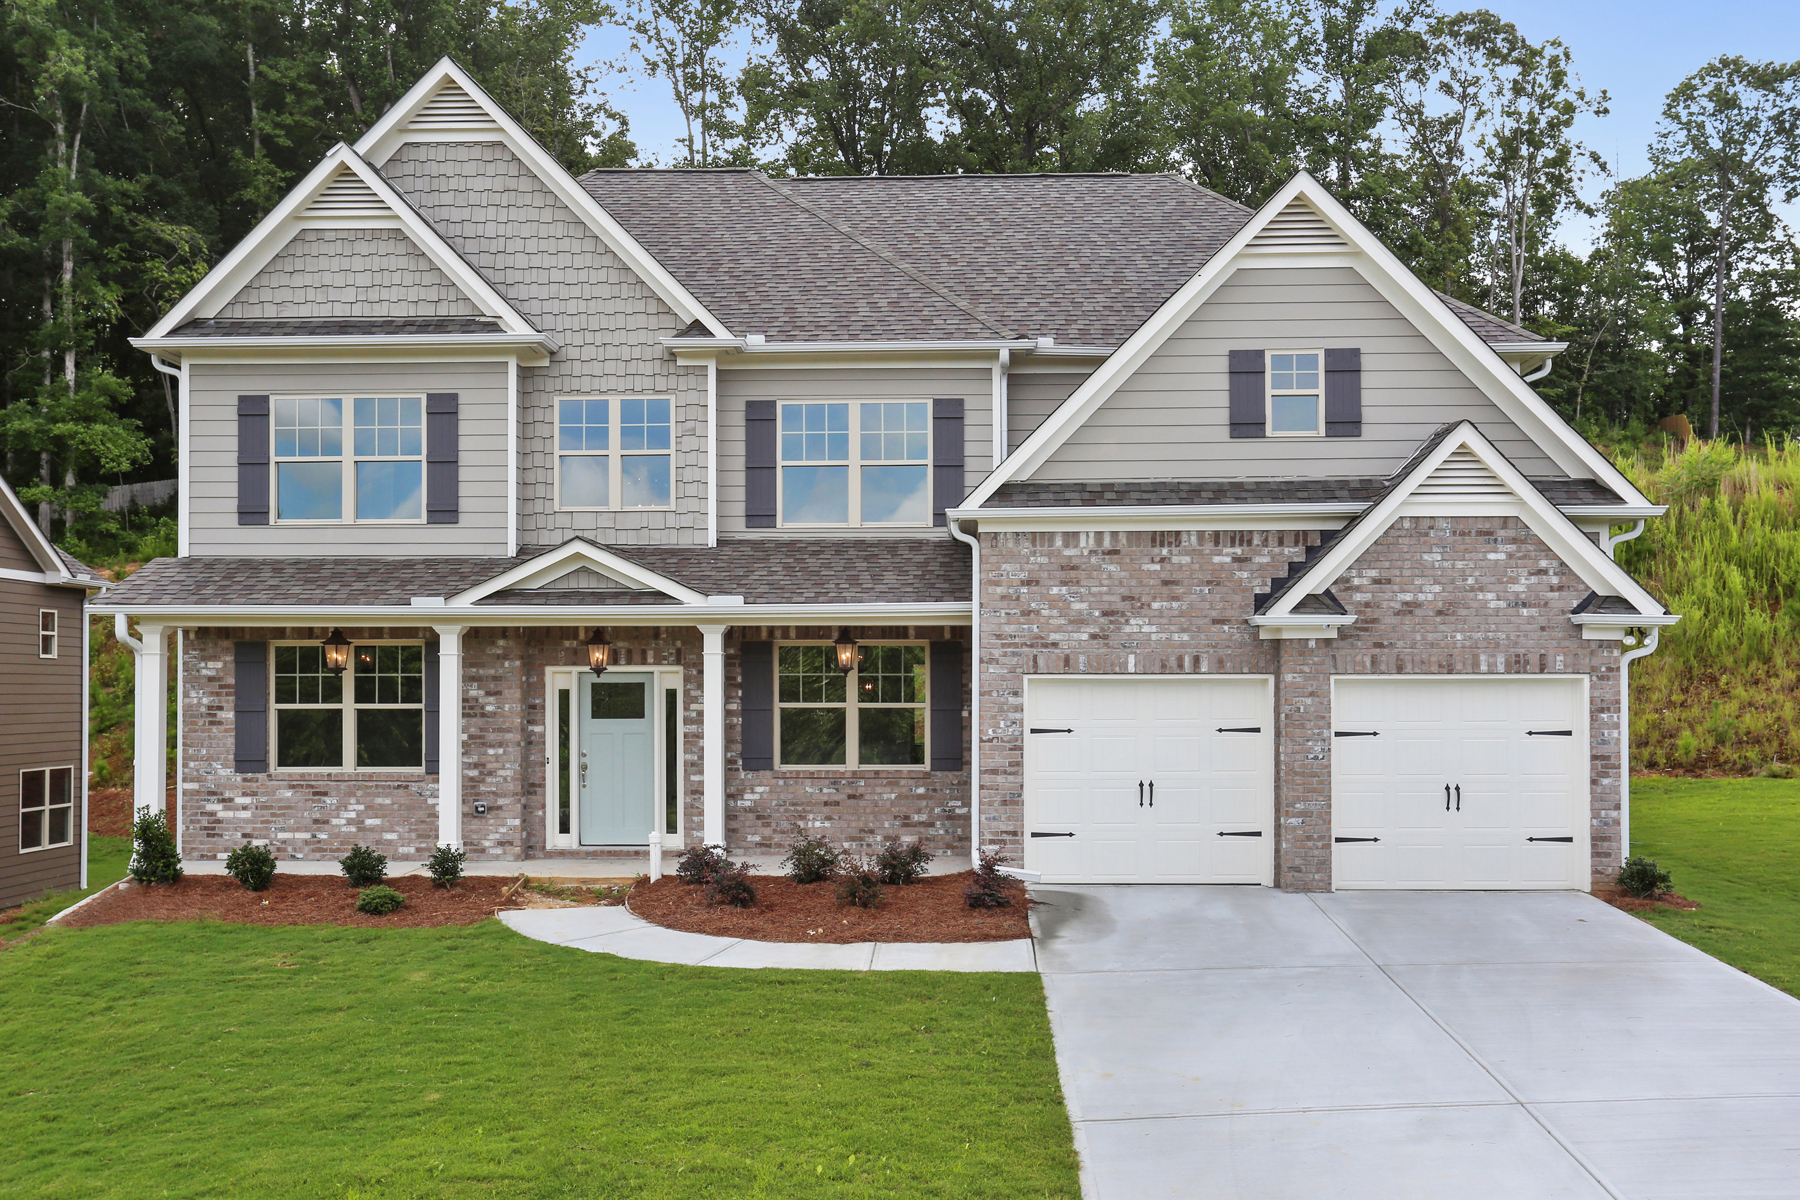 Single Family Home for Sale at Thorngate Phase 5 - Move-In Ready 1490 Nightfall Court Cumming, Georgia 30040 United States